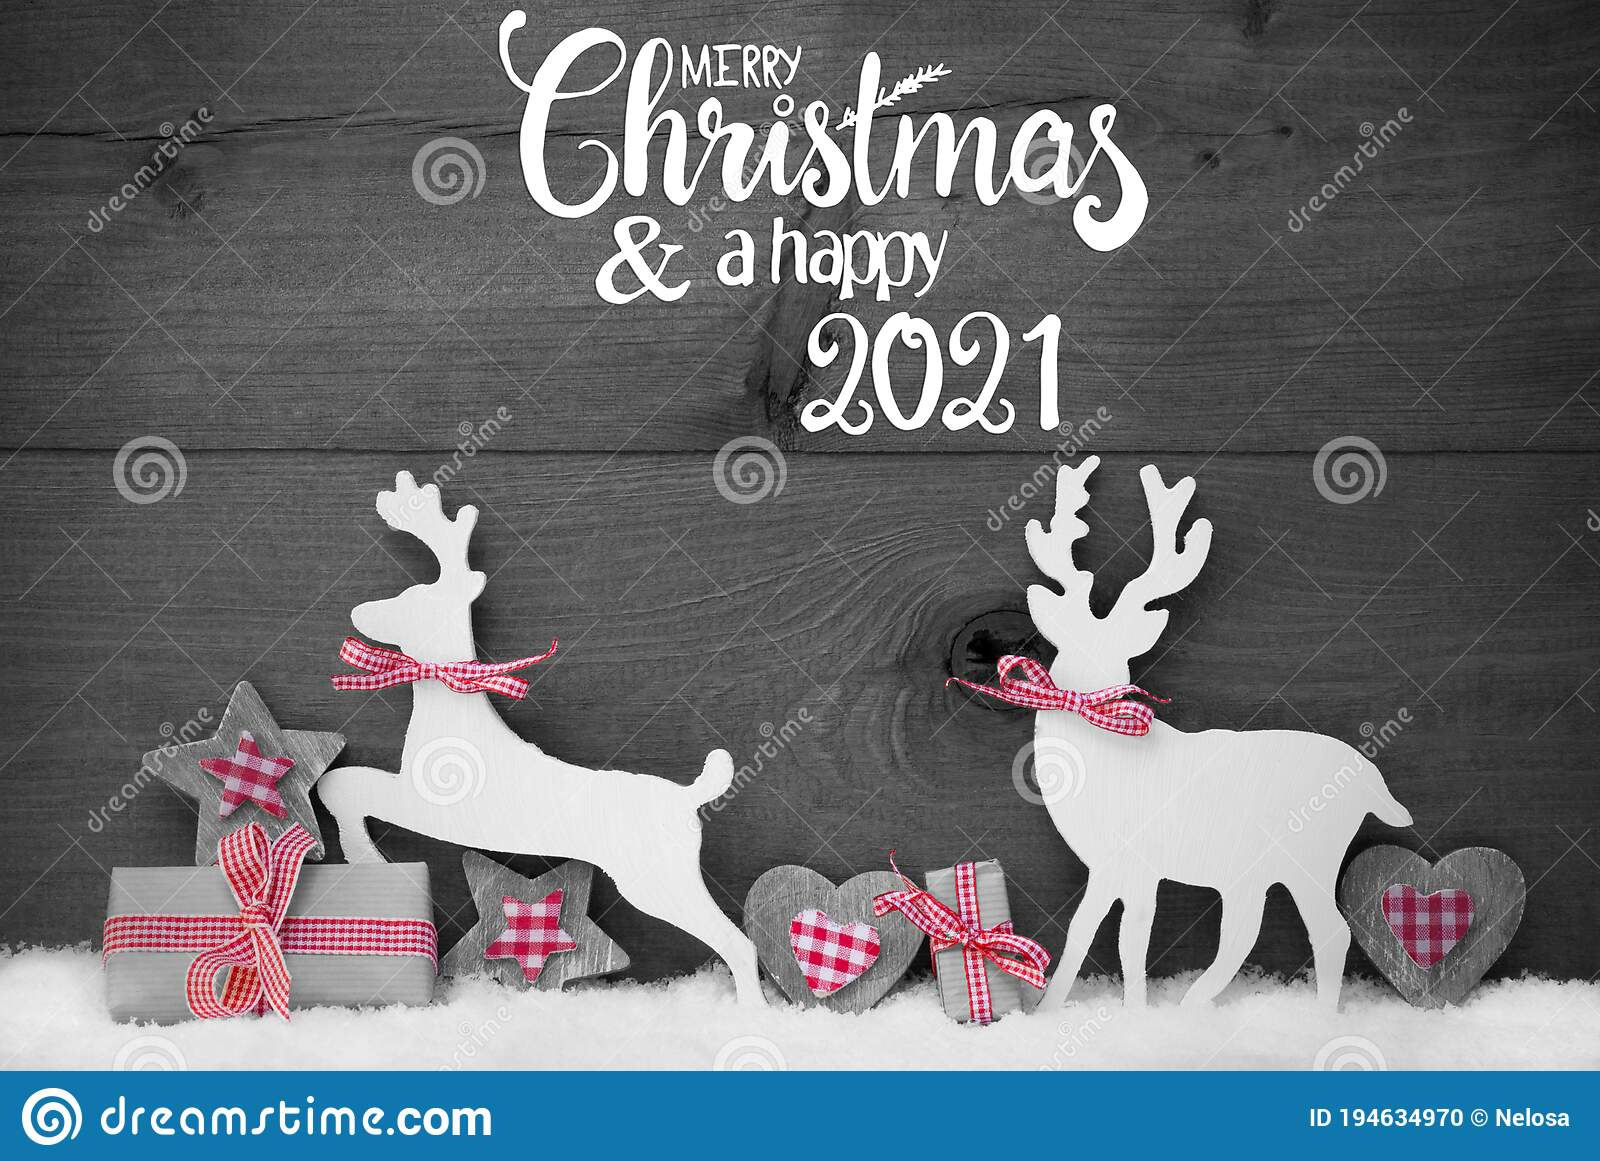 Merry Christmas 2021 Pictures Gray Gift Deer Heart Snow Merry Christmas And Happy 2021 Gray Background Stock Photo Image Of Reindeer White 194634970